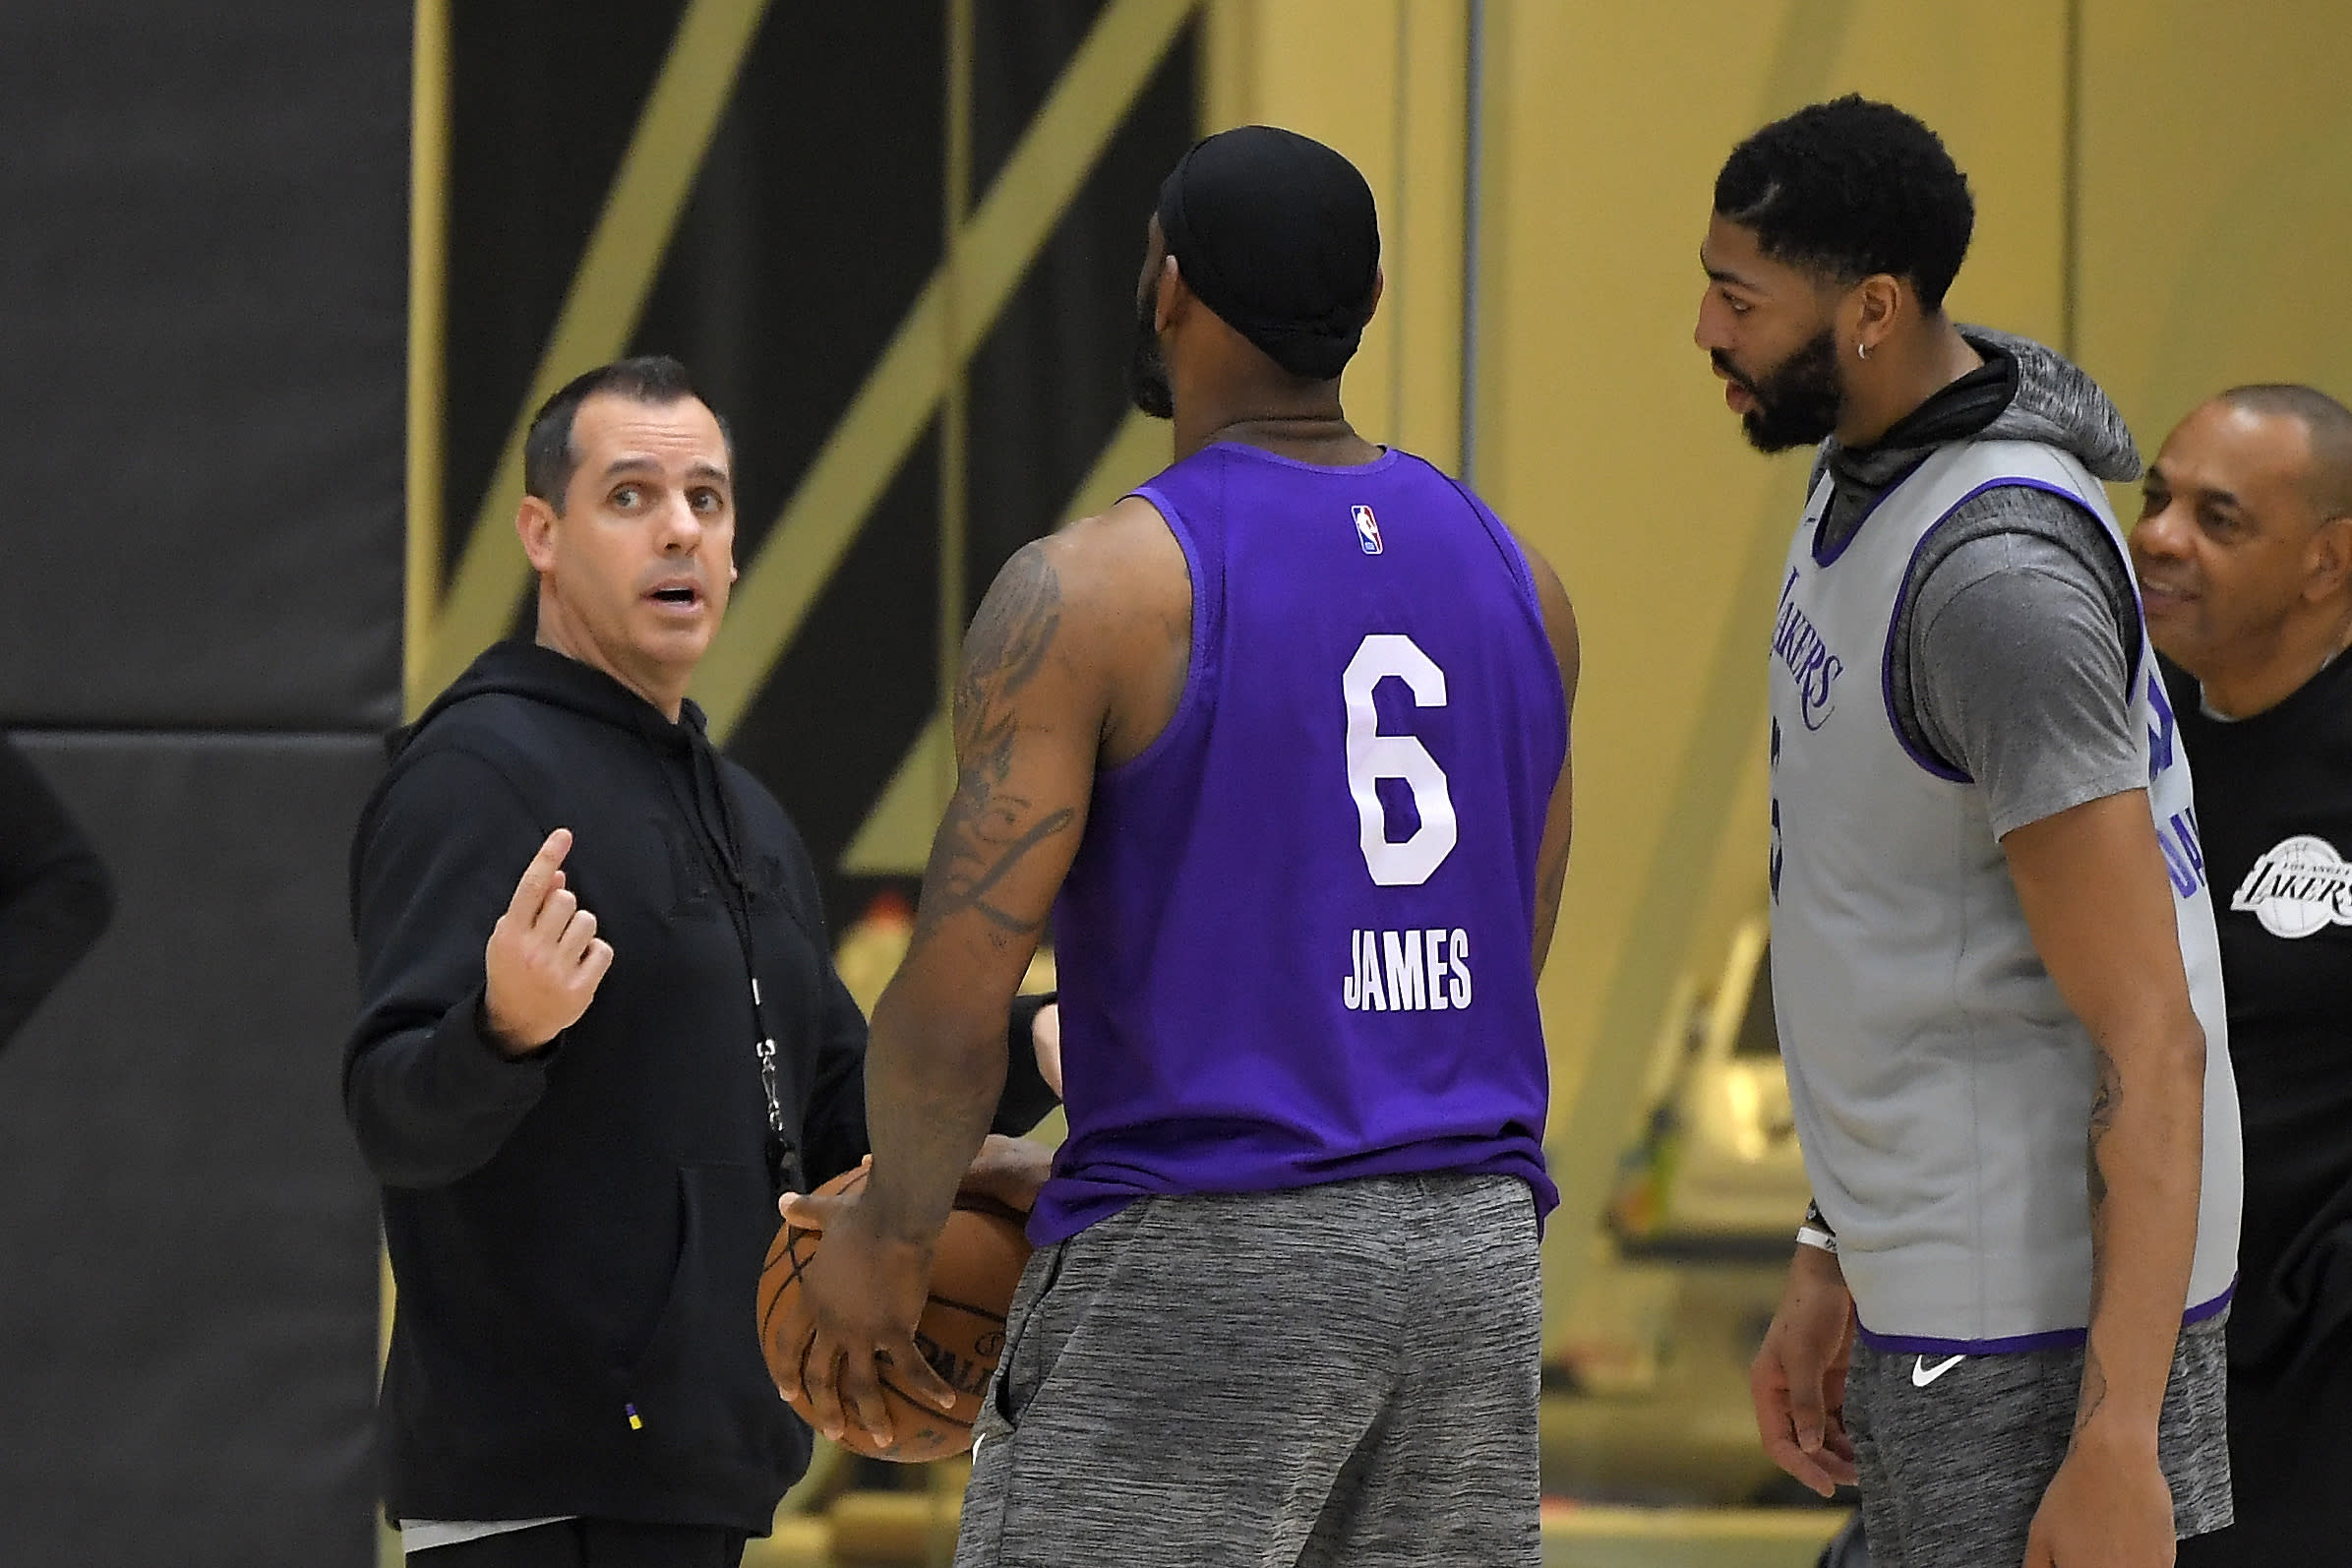 Lakers get OK to open practice facility, per report